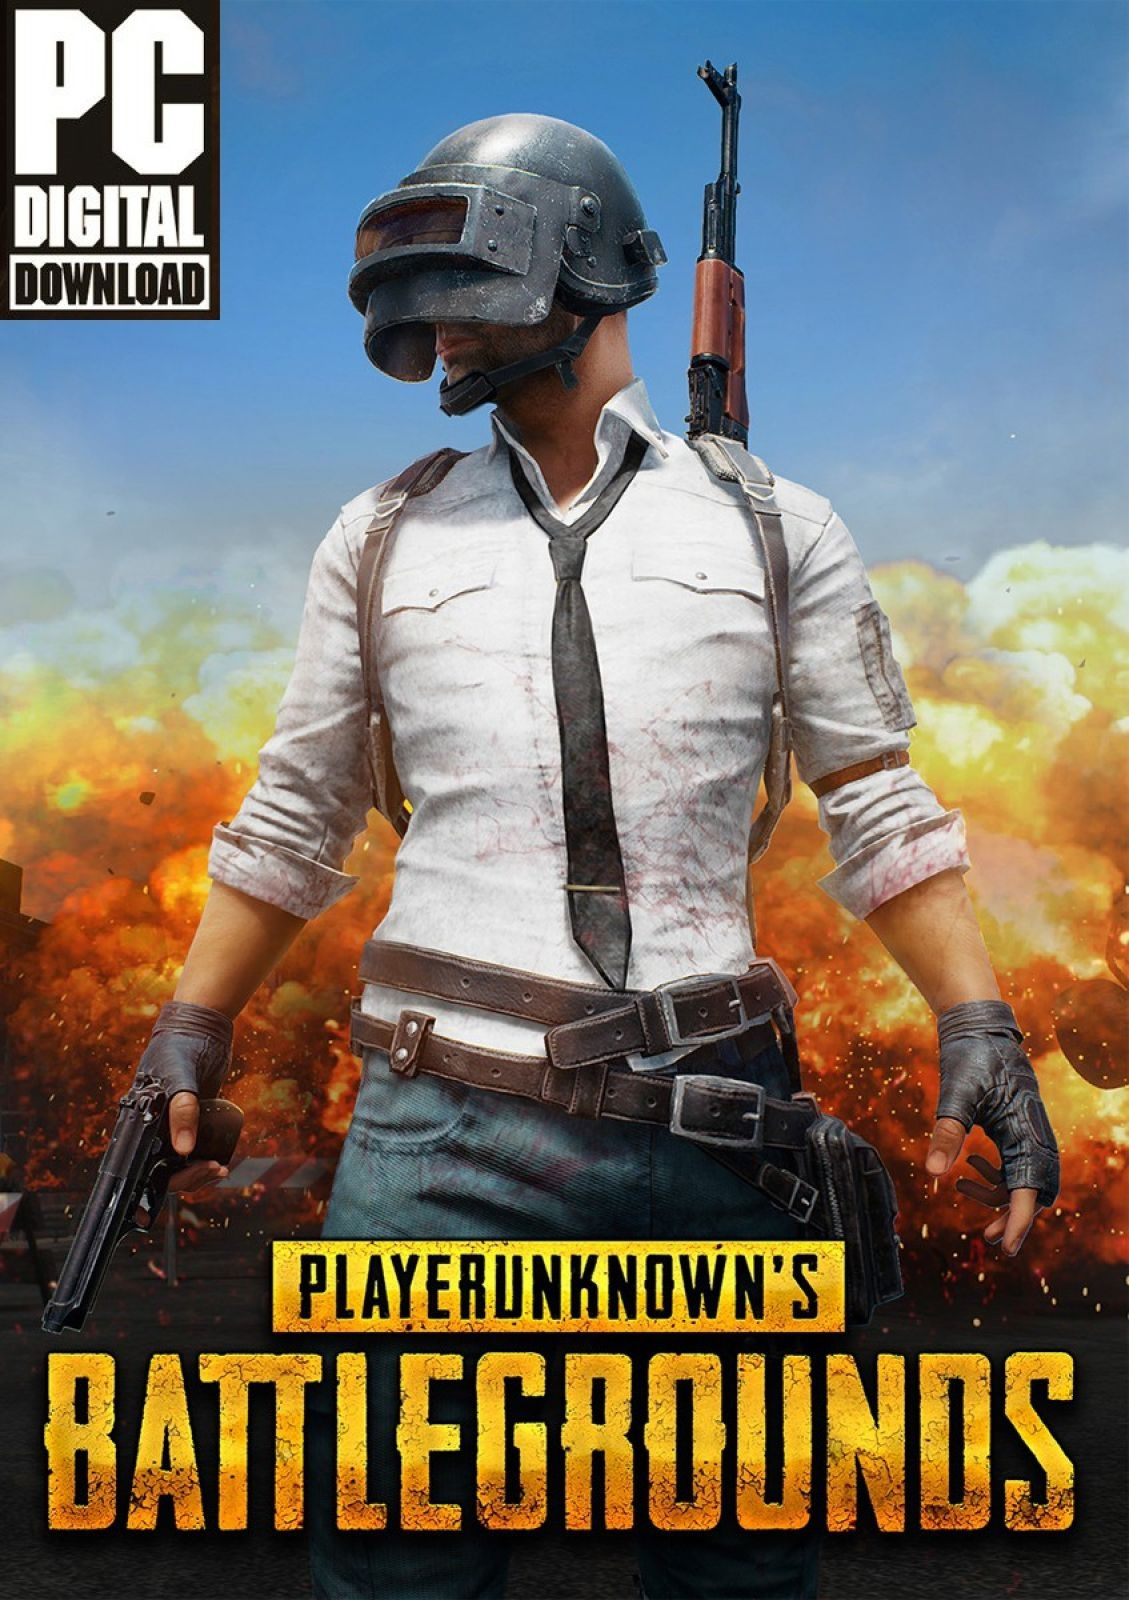 Can I run PUBG in an Intel Core i5 8250U, 1 6GHz with up to 3 4GHz